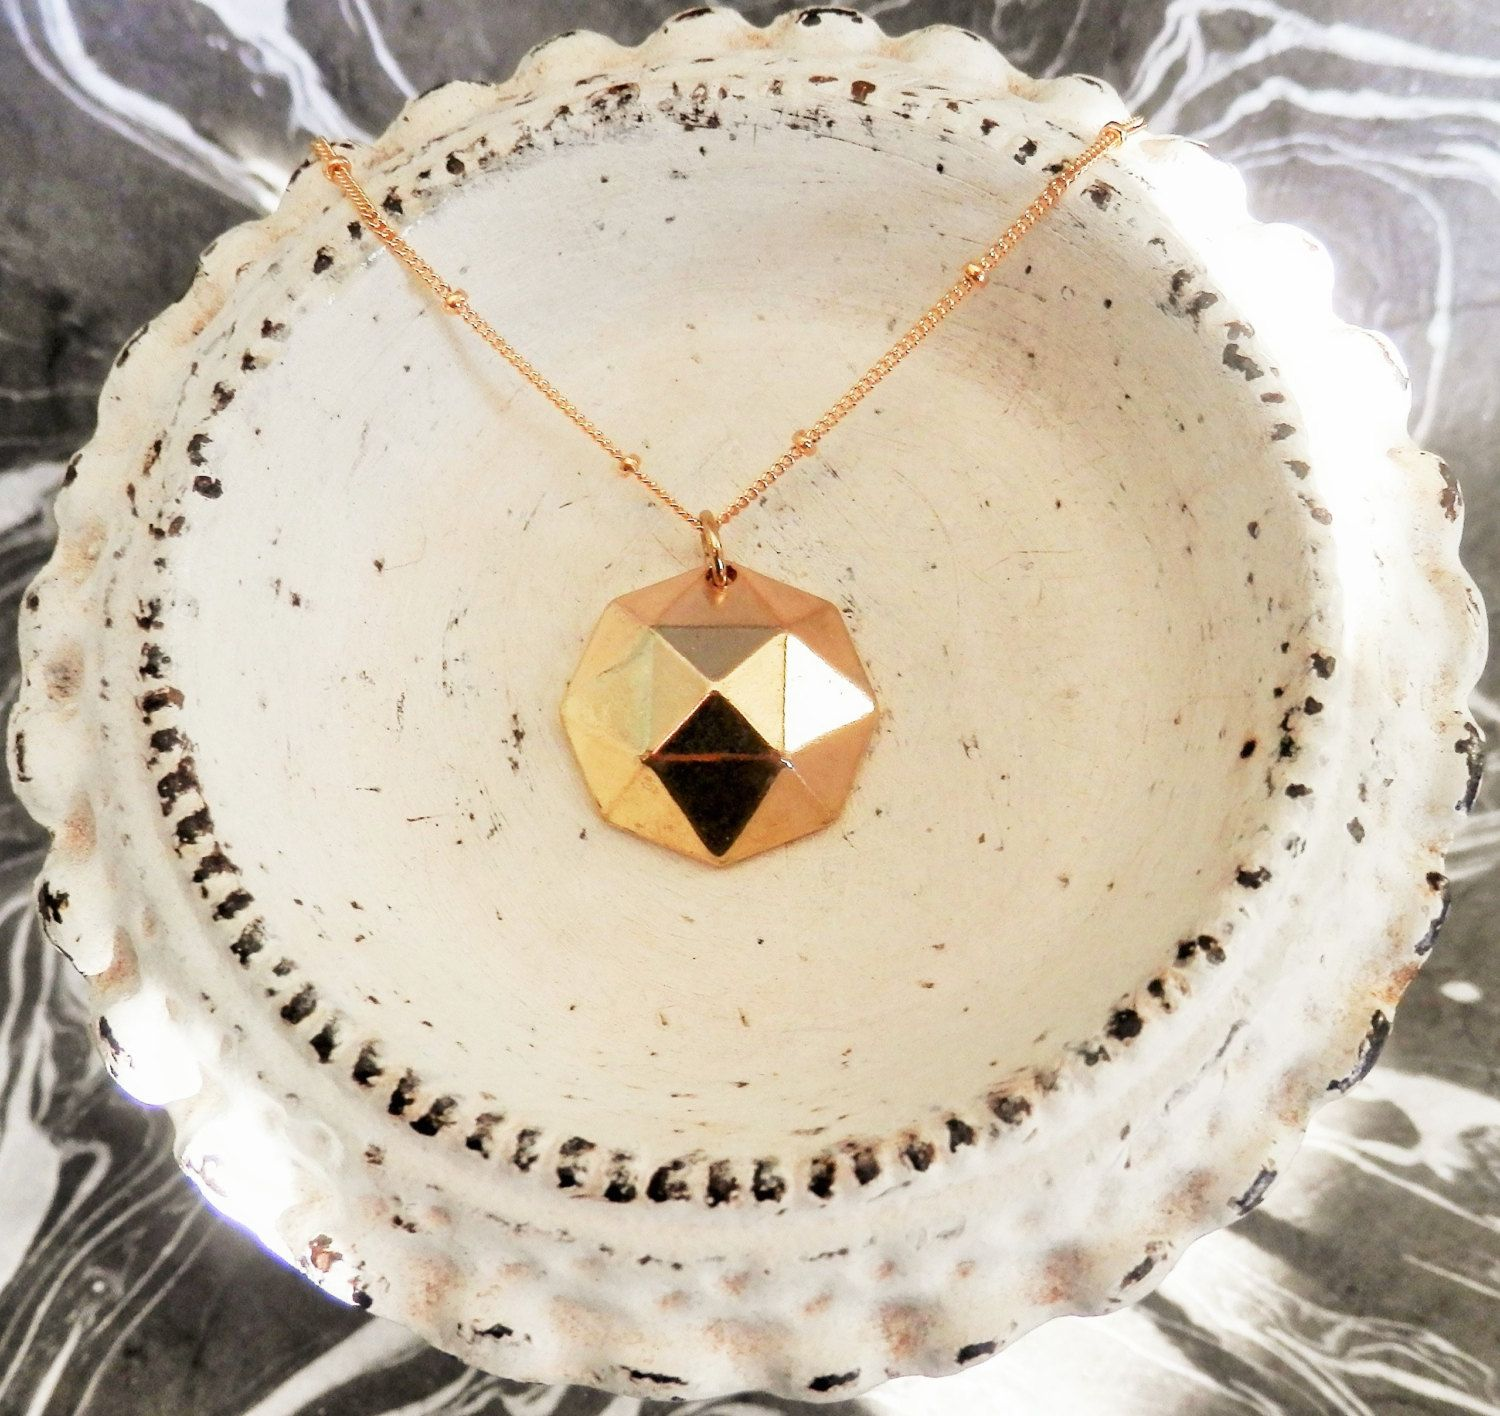 Geometric Orb Necklace // Gold Geometric Necklace // Gold Disco Necklace // Delicate Geometric Necklace by ransomjewelry on Etsy